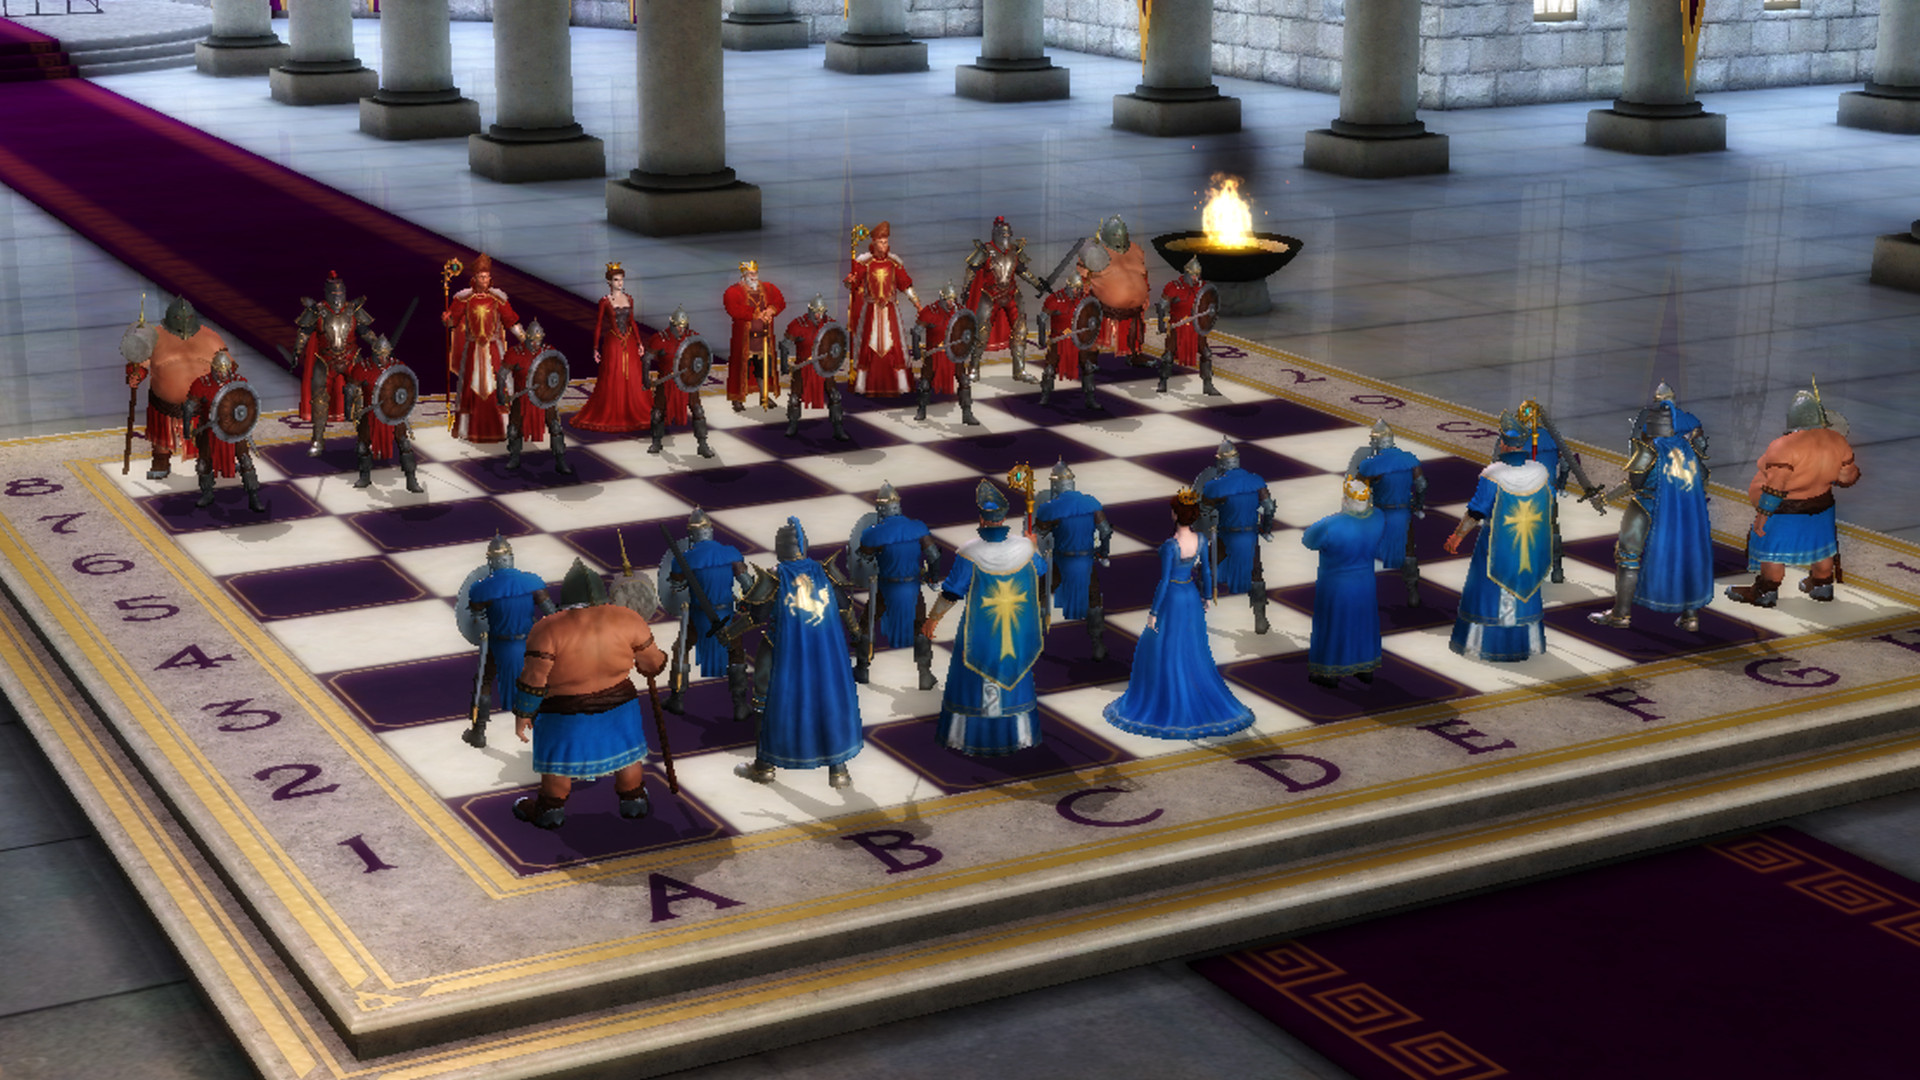 Play Chess online at Agame.com - Play Free Online Games